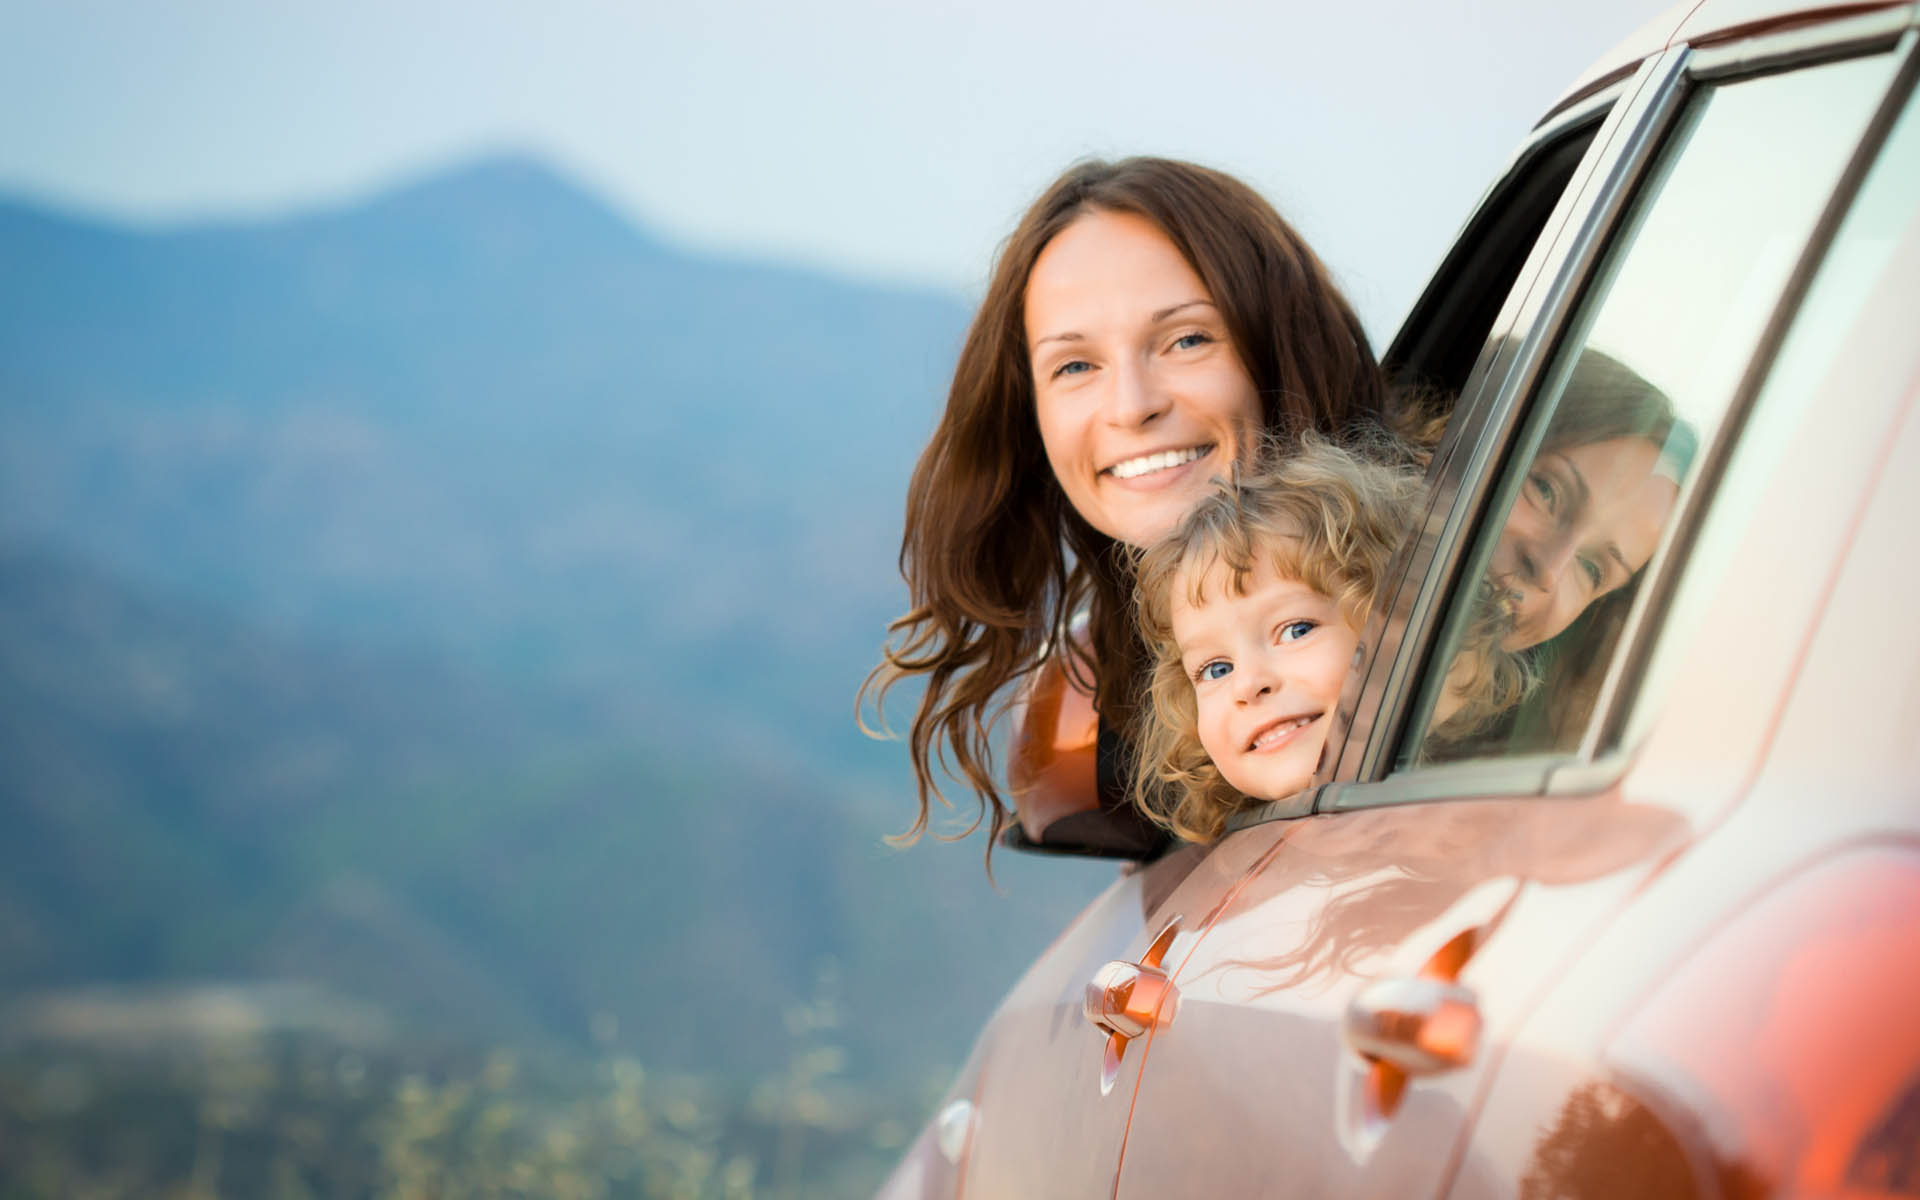 Areas of Specialization - Family Car